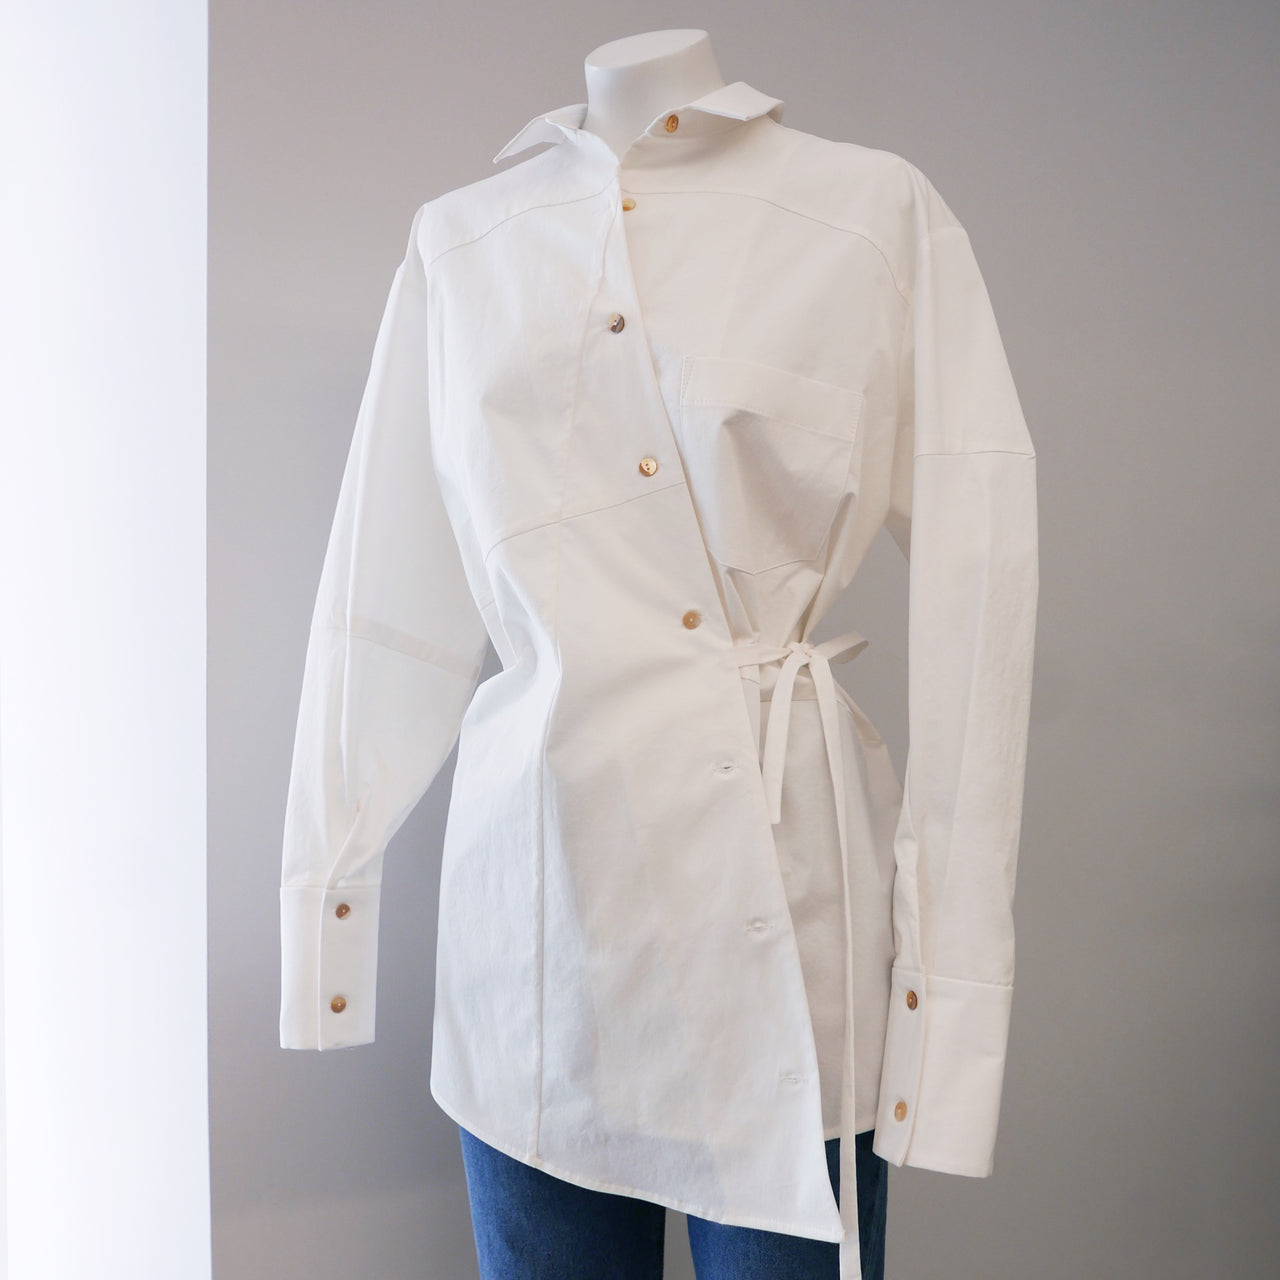 Tatiana Cotton Shirt in White